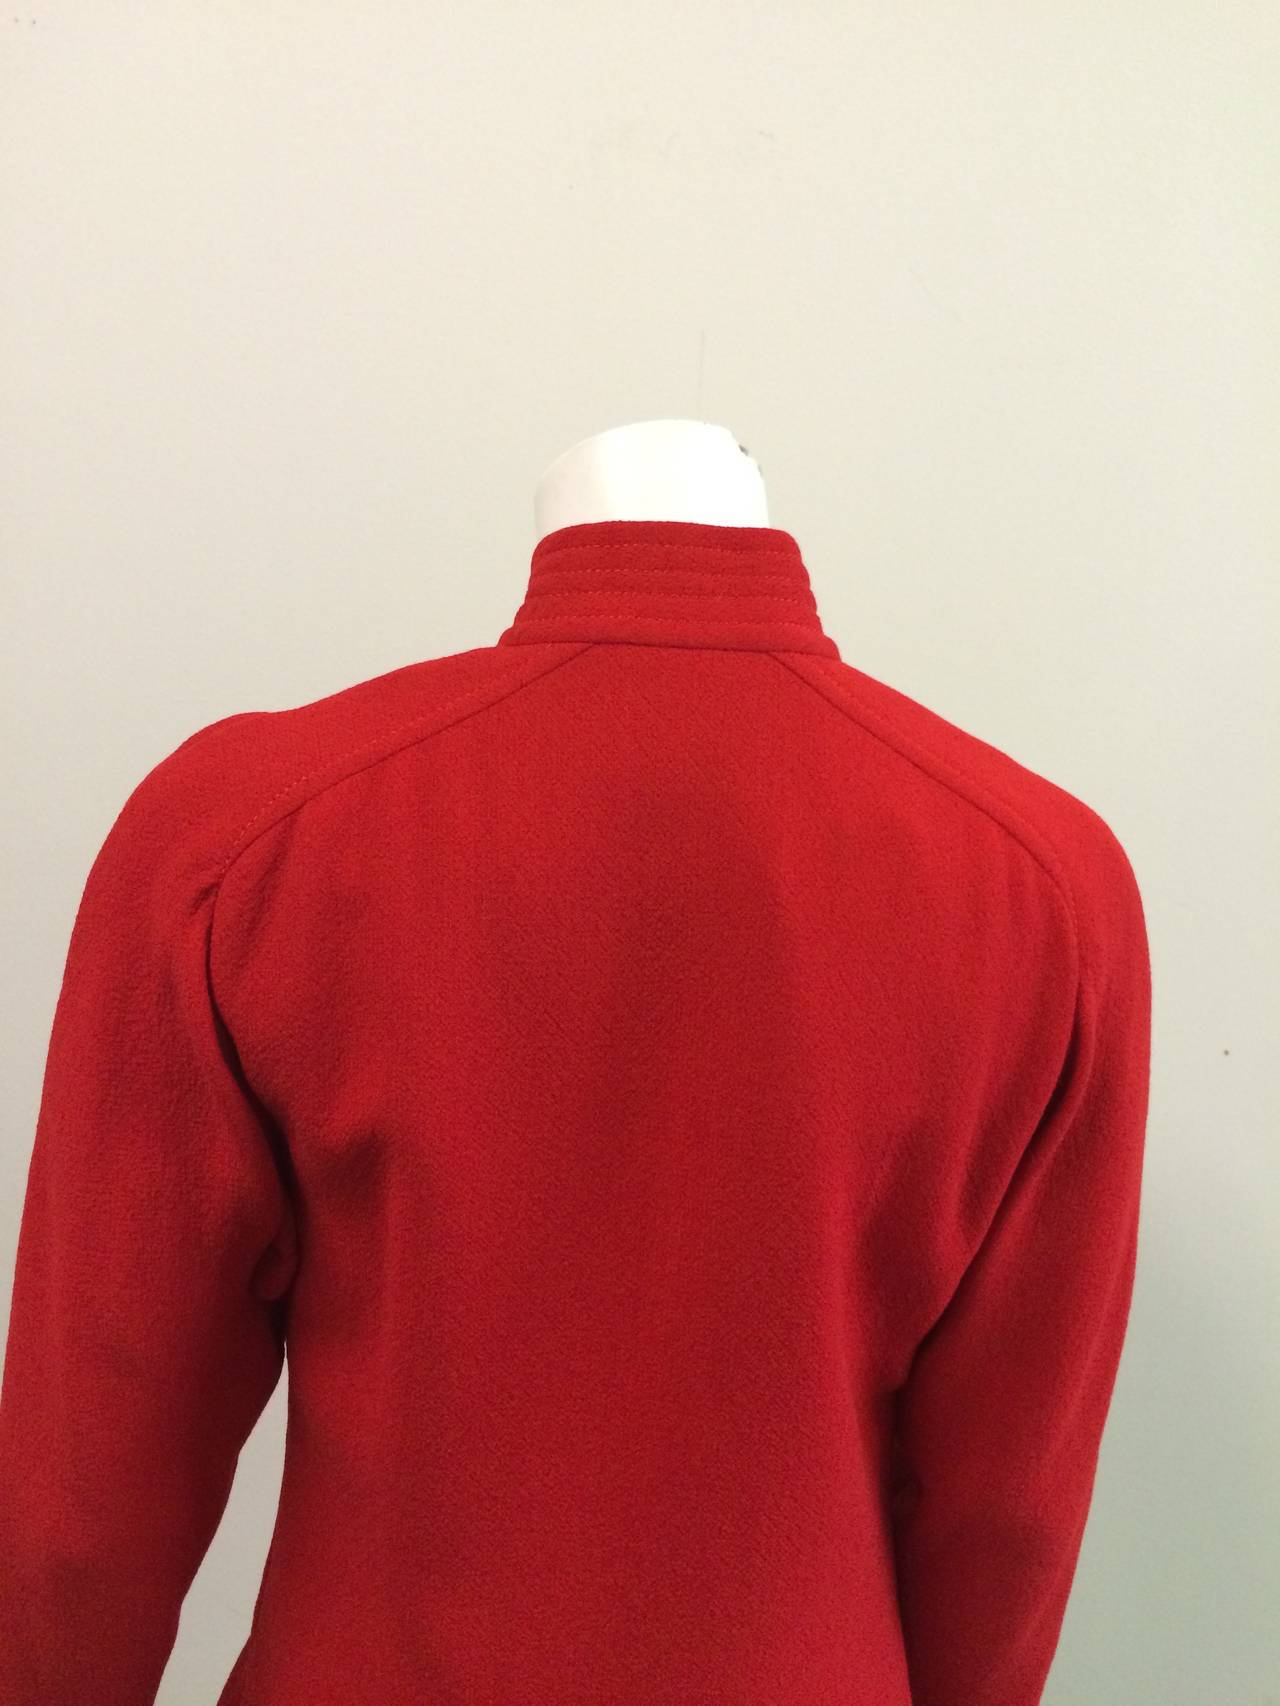 Galanos for Neiman Marcus Red Wool Dress Size 8. For Sale 3